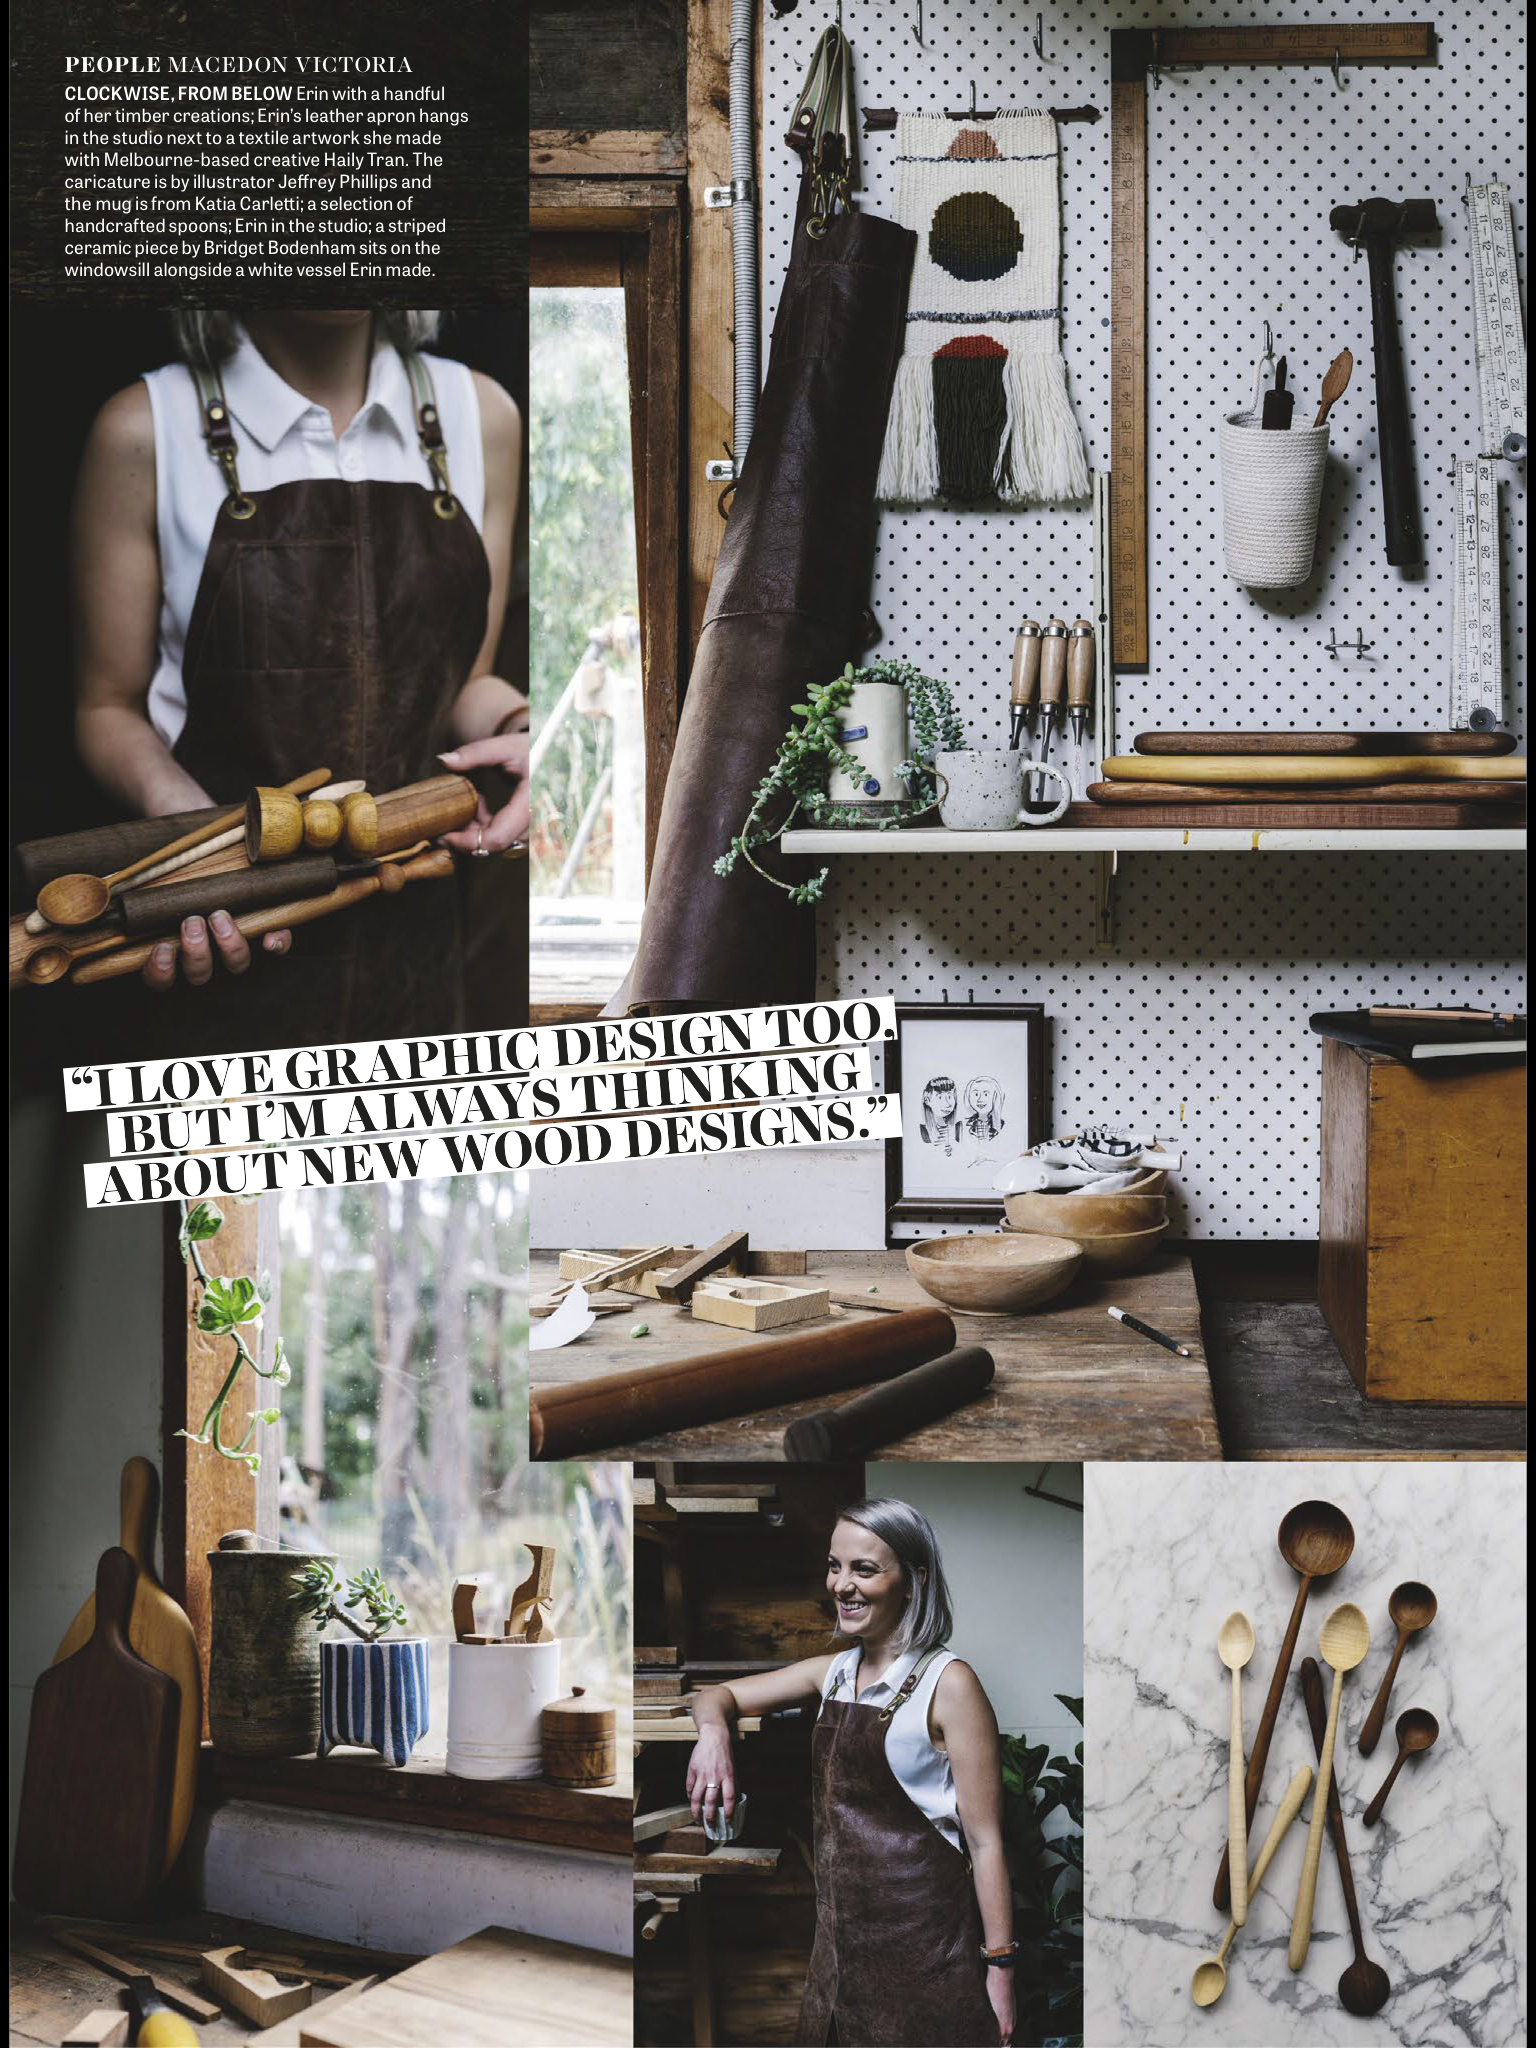 Erin+melbourne,+Melbourne+woodwork+design+for+Country-Style-May-2017+woodworker-3.png